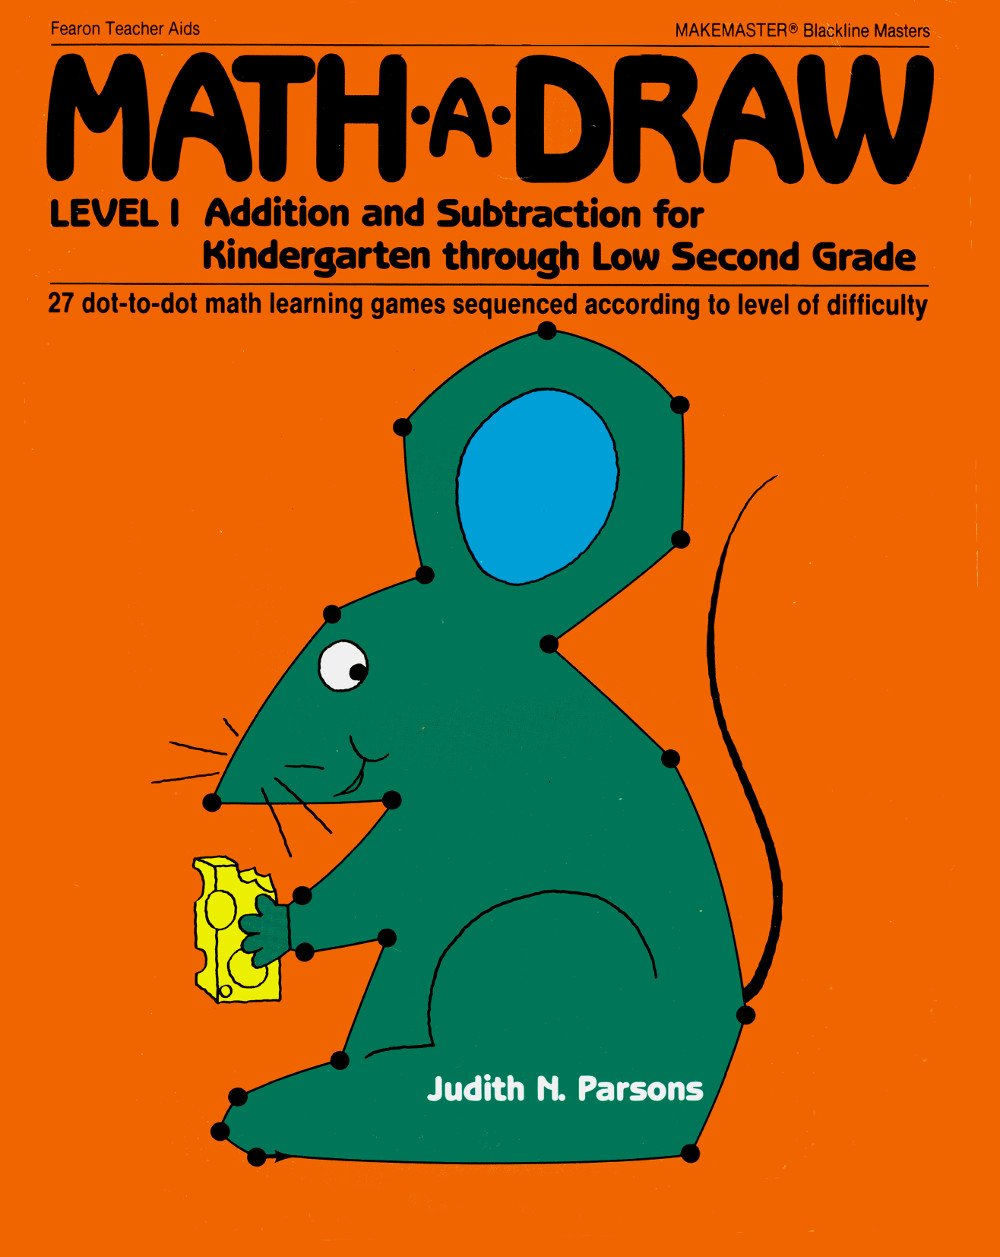 Math a Draw: Level 1: Judith Parsons: 9780822445692: Amazon.com: Books